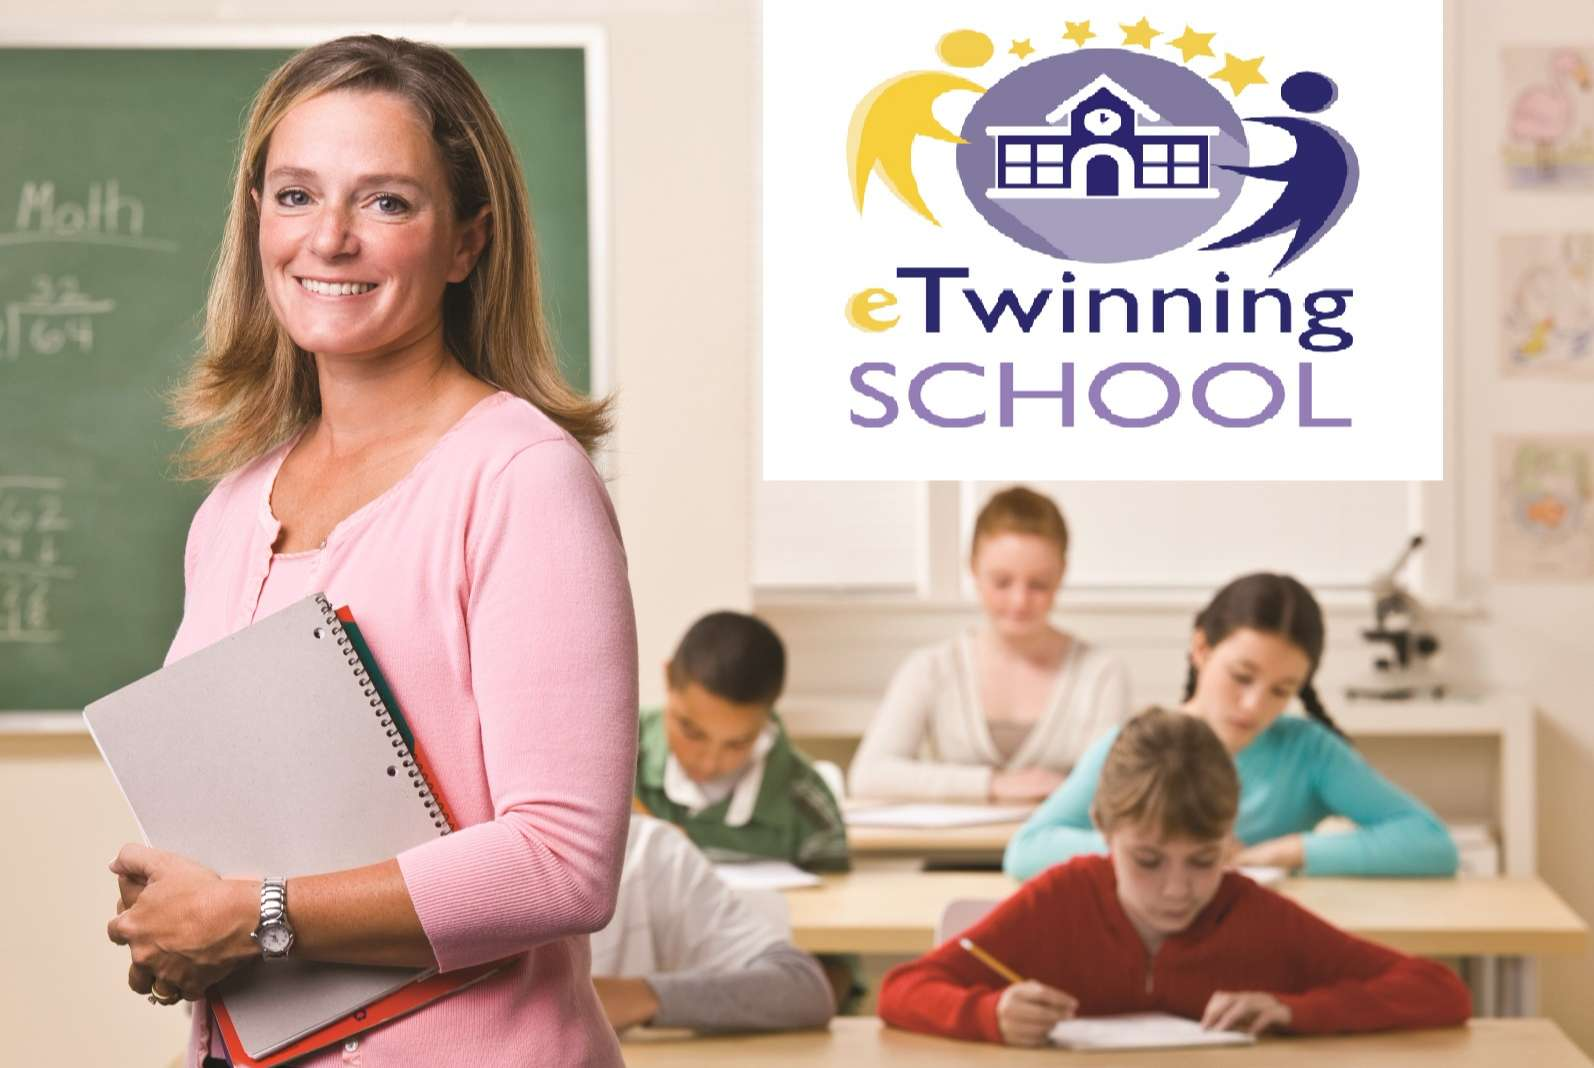 eTwinning launched eTwinning school label